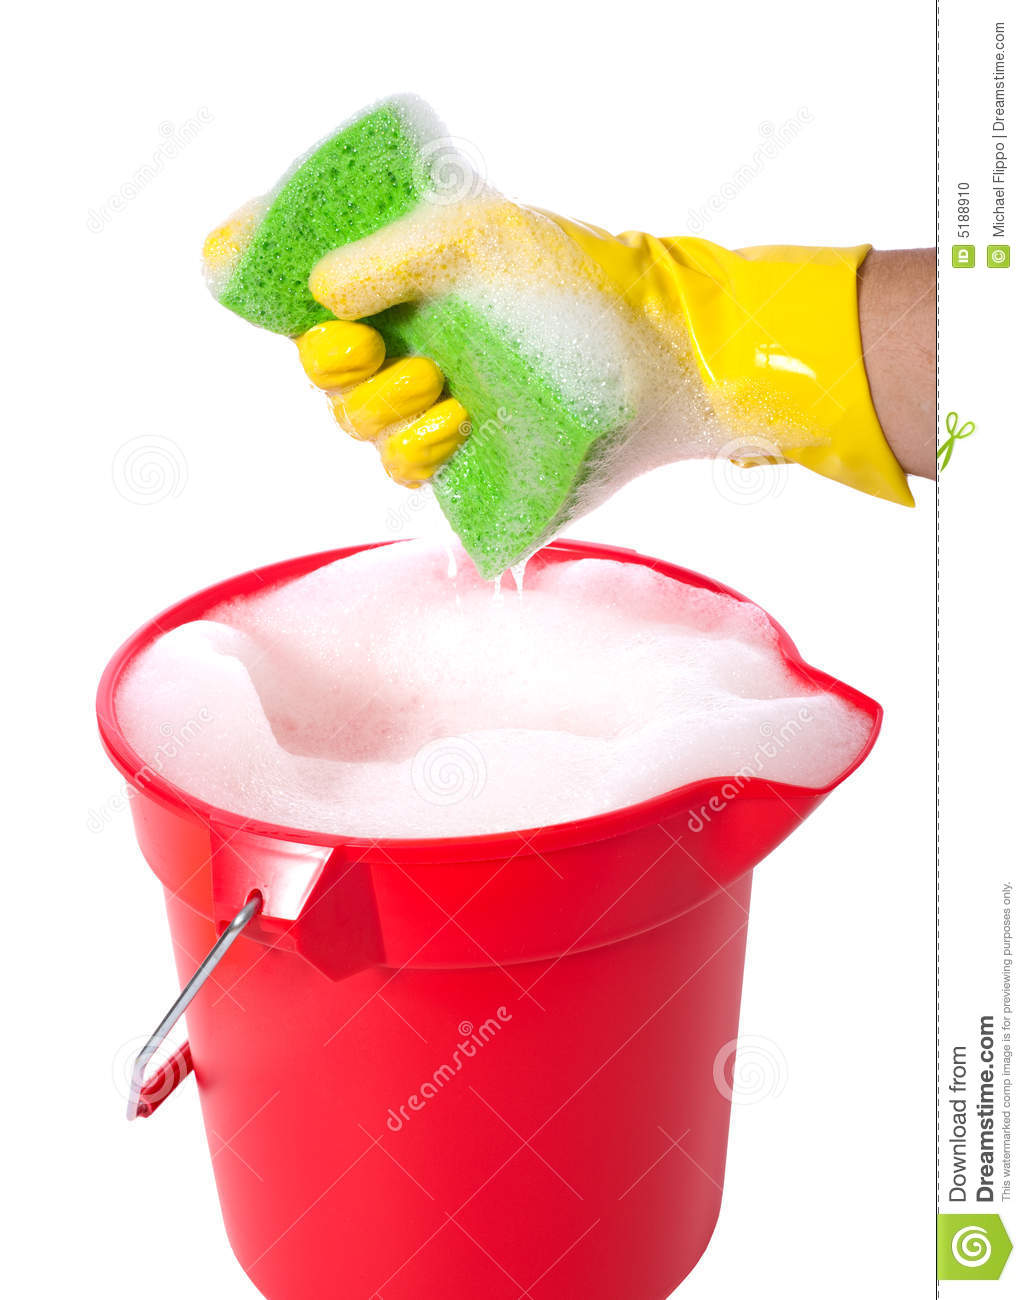 sudsy bucket or pale of soap with a hand holding a sponge. cleaning ...